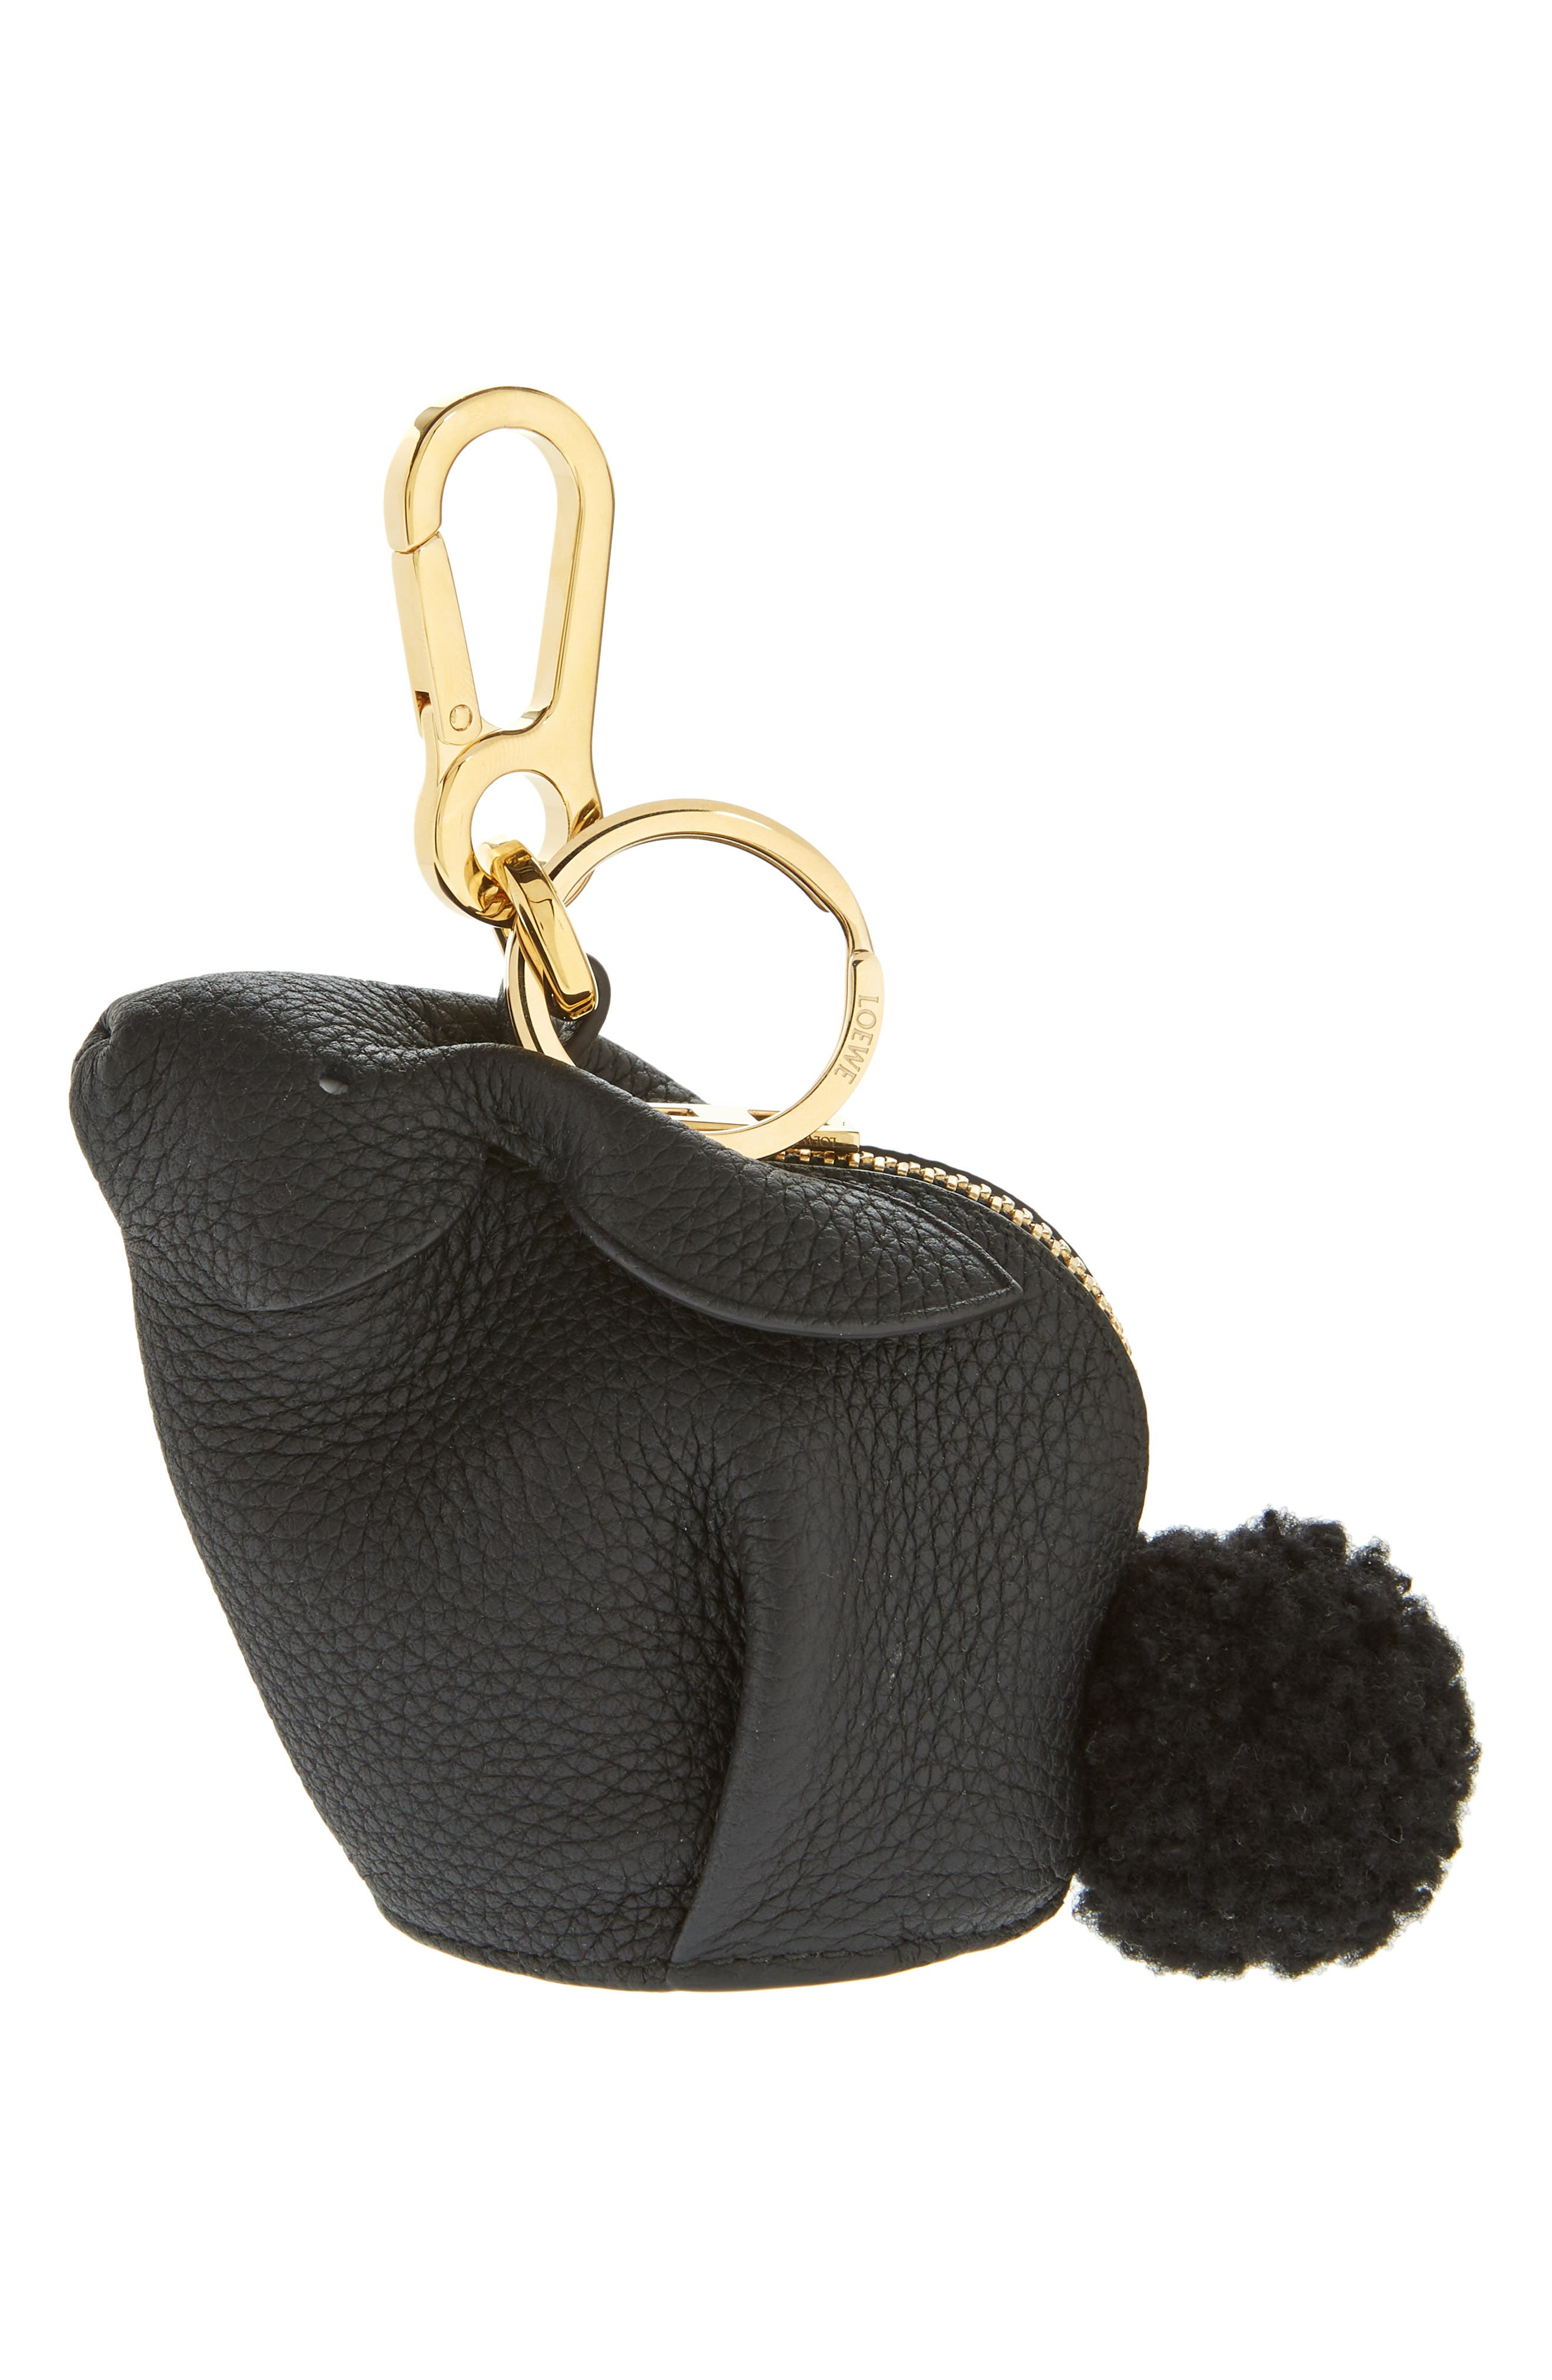 Bunny Bag Charm with Genuine Shearling,                         Main,                         color, 001